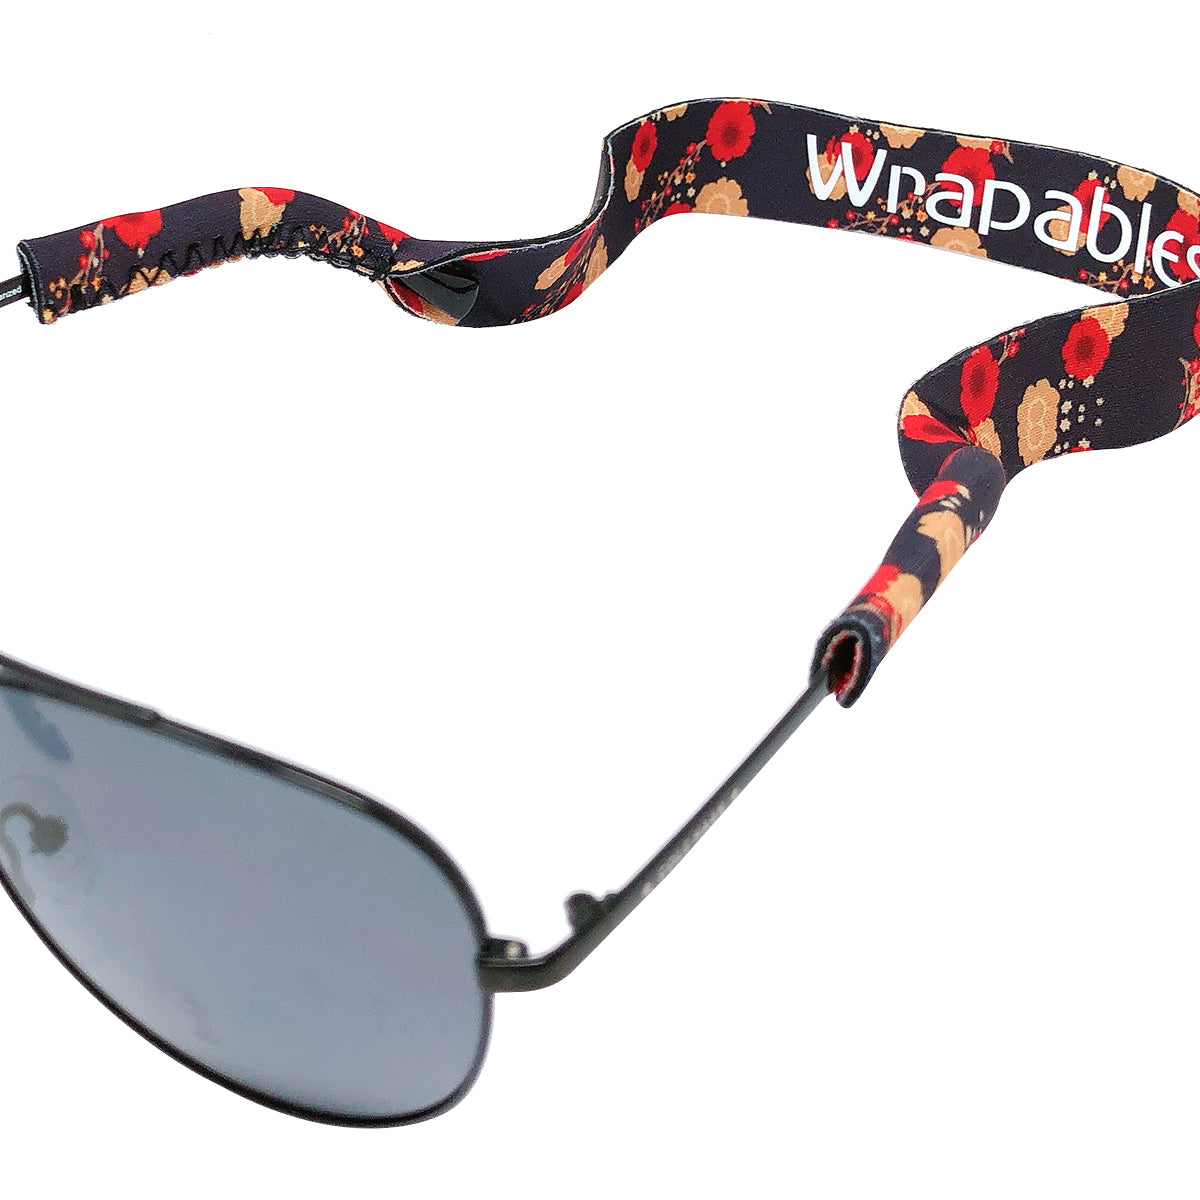 Wrapables Adjustable Eyewear Retainer, Sunglass Strap with Neoprene Floating Material for Sports and Outdoors